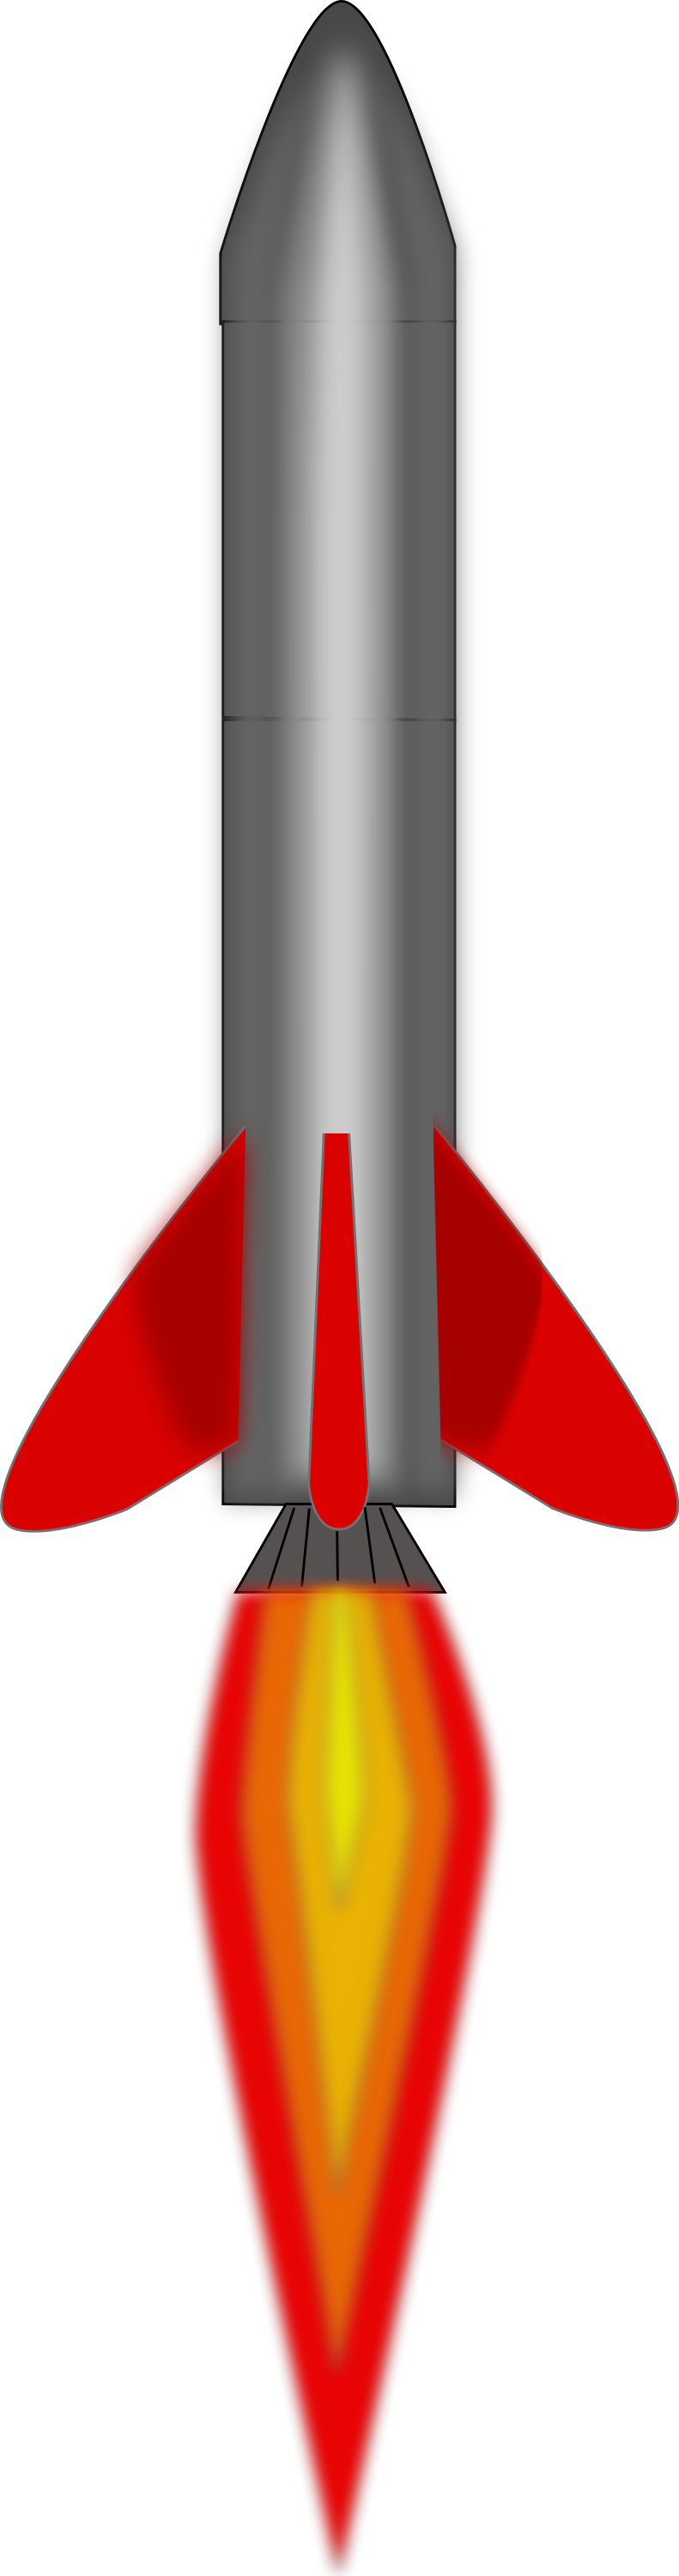 rocket clipart transparent background clipground #19684